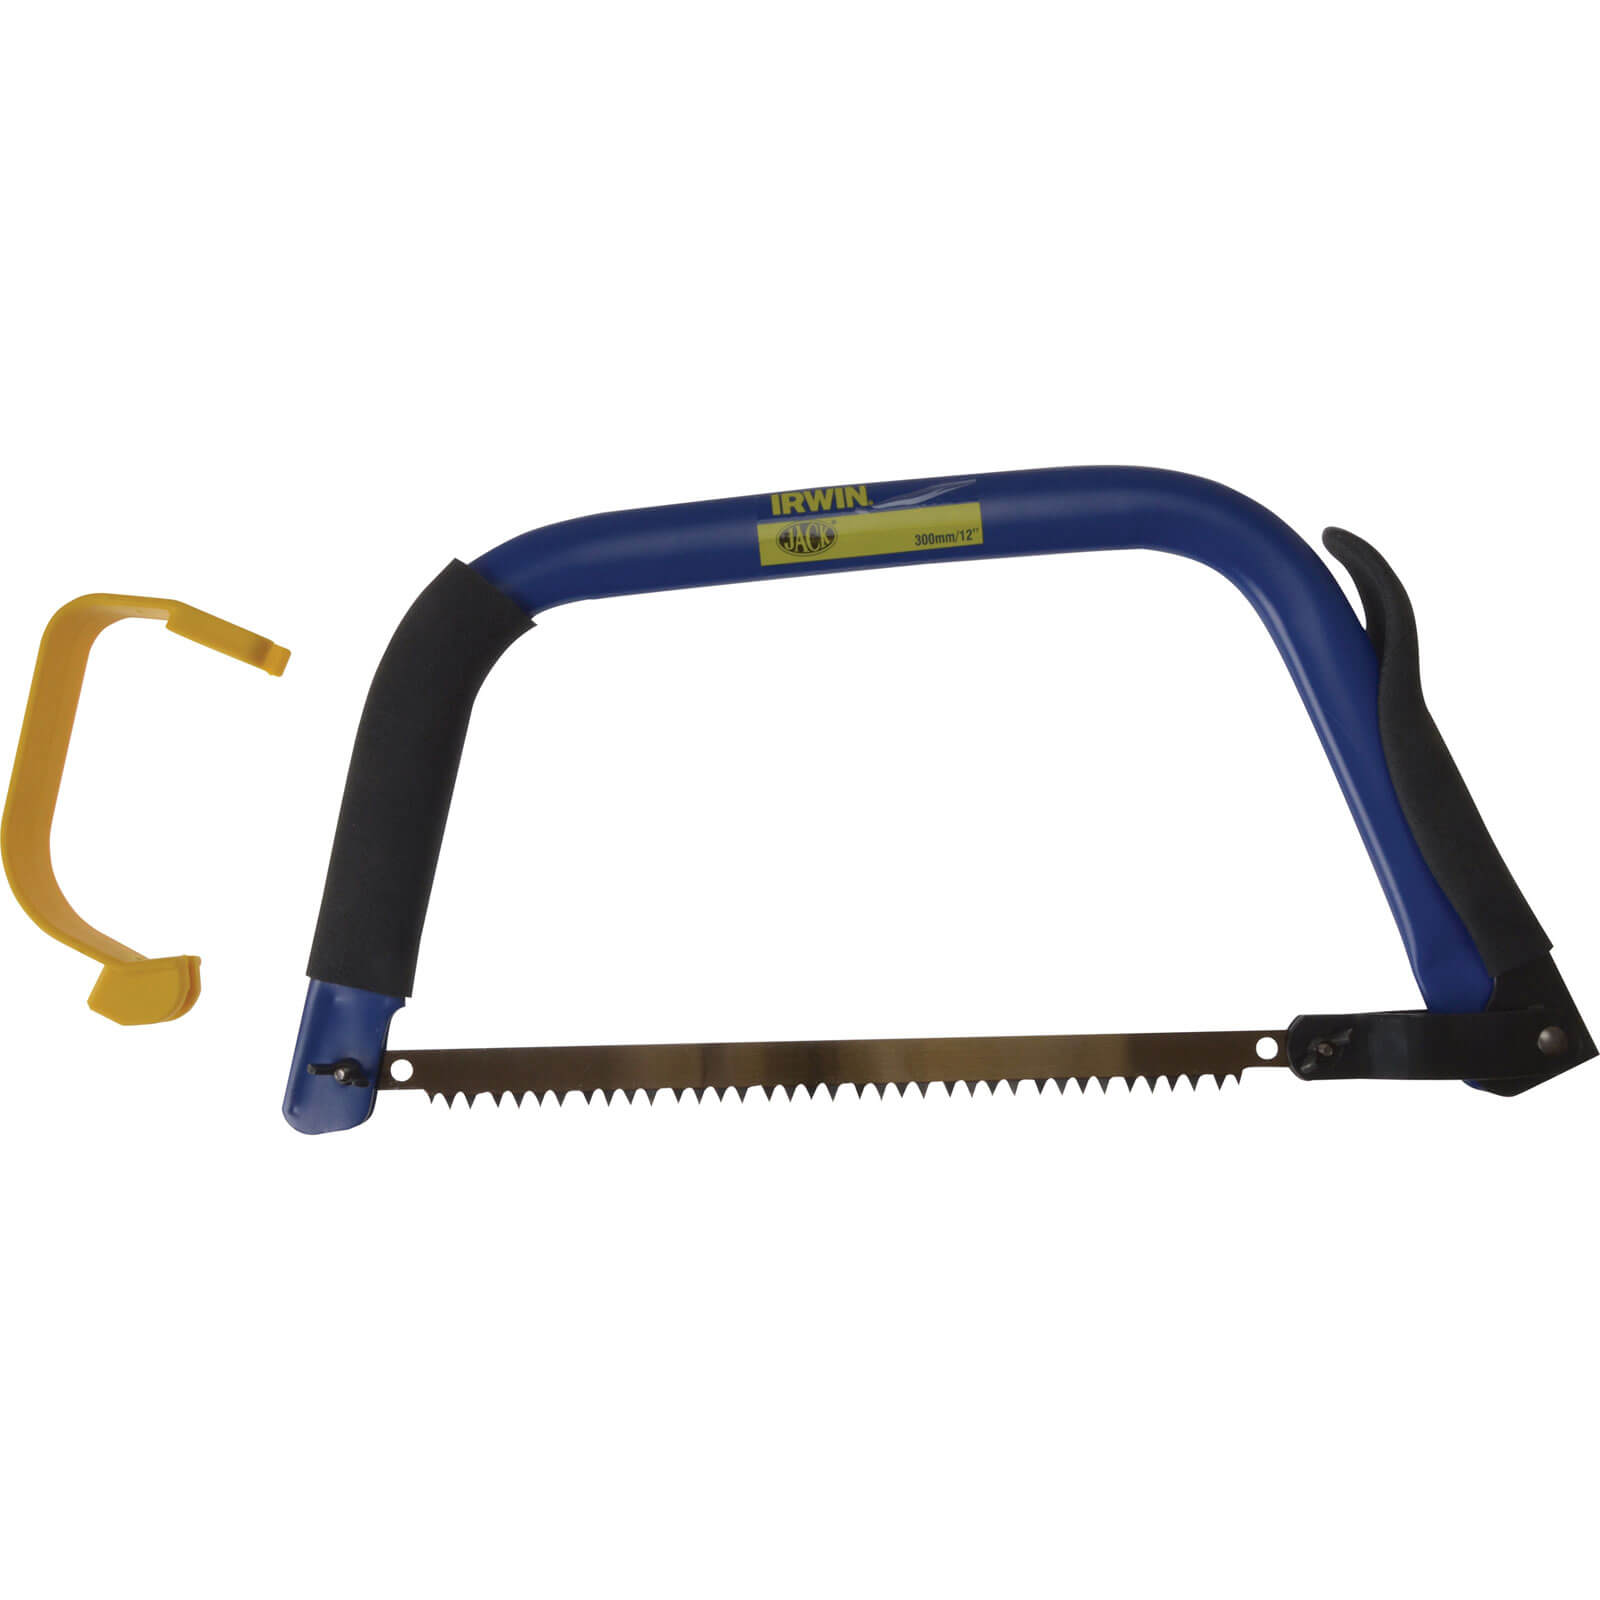 Jack 2 in 1 Bow Saw & Hacksaw with Blades